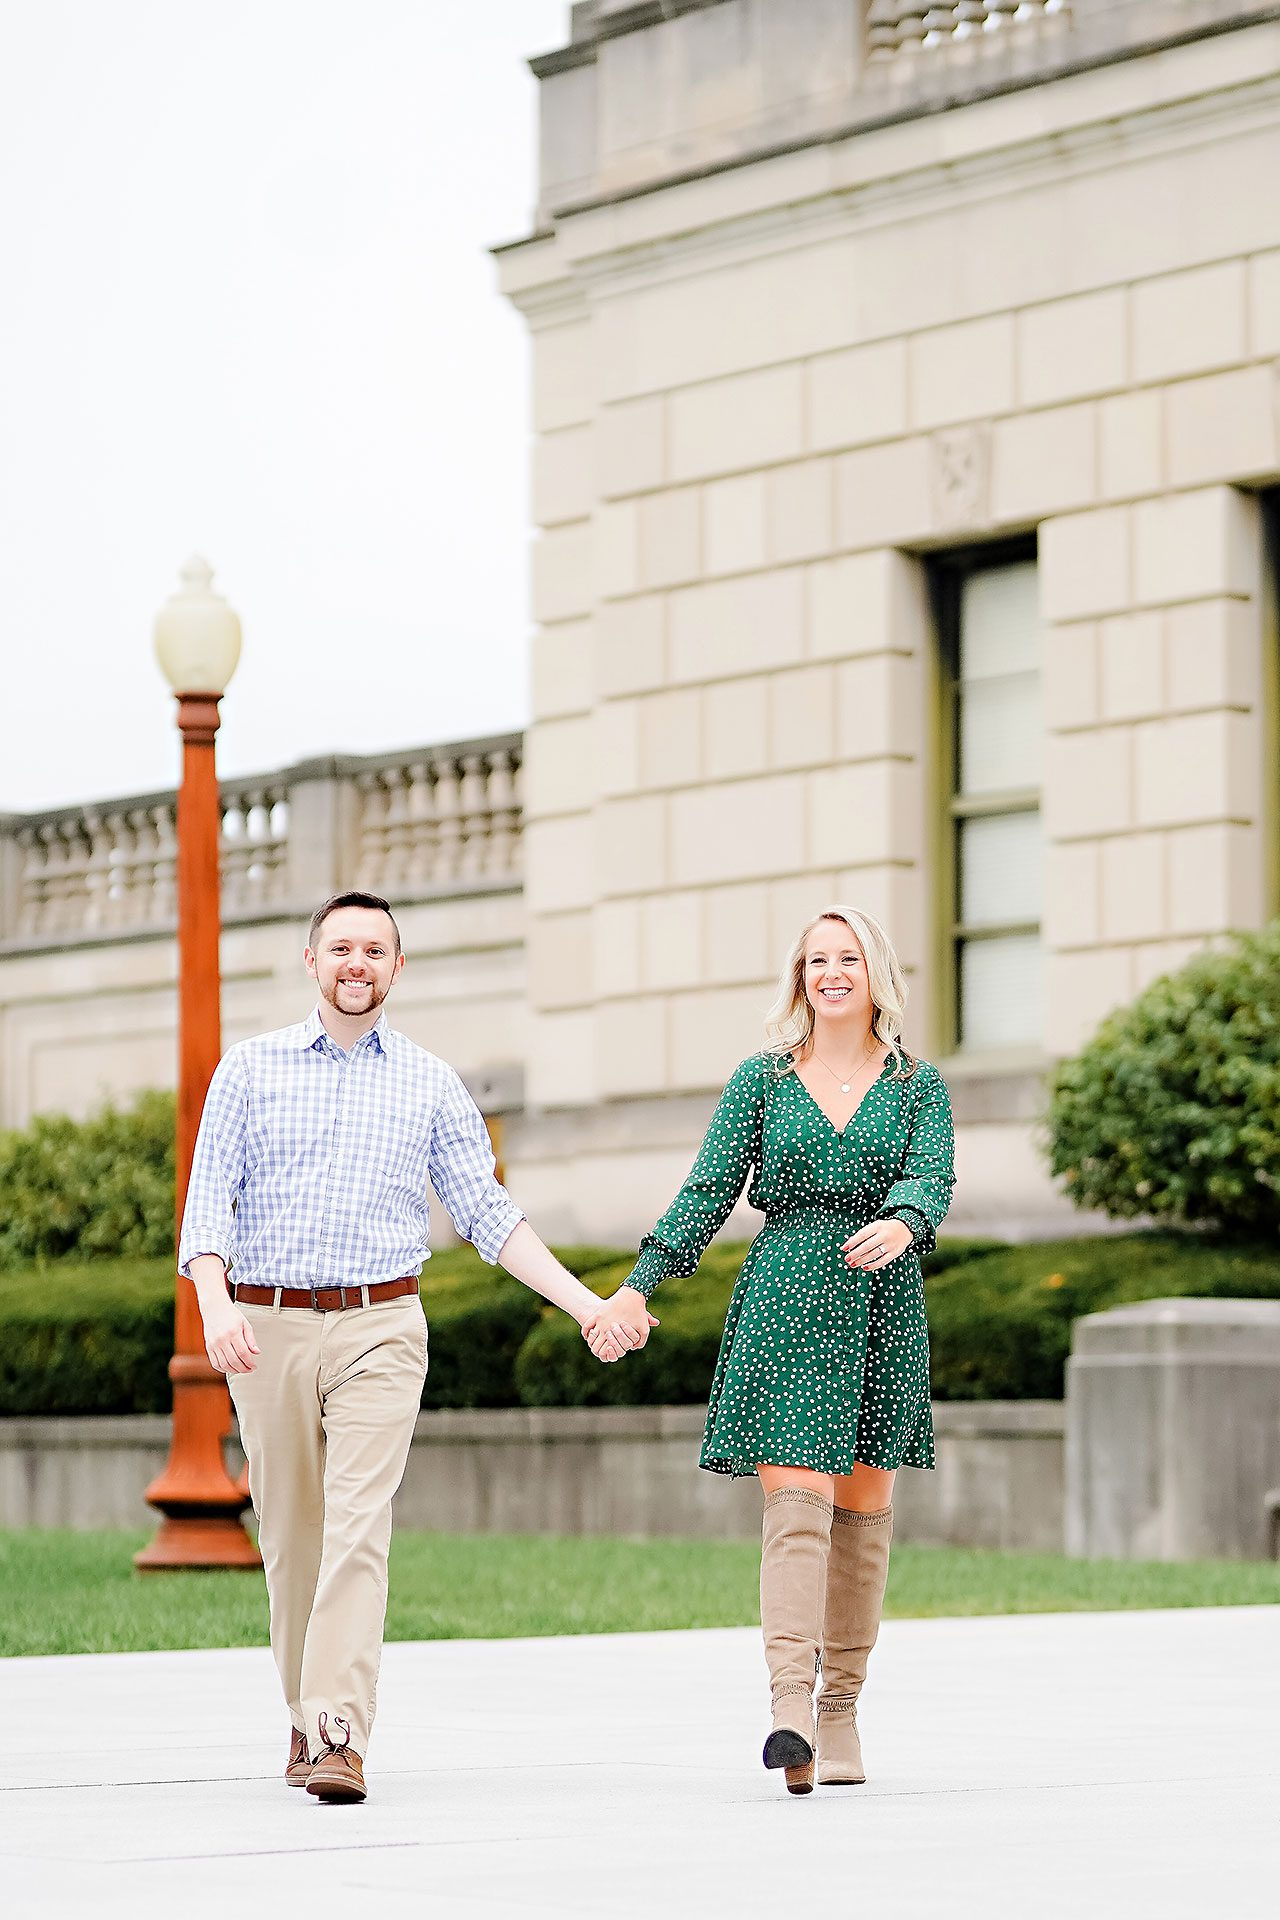 Kristen Jonny Indianapolis Downtown Engagement Session 046